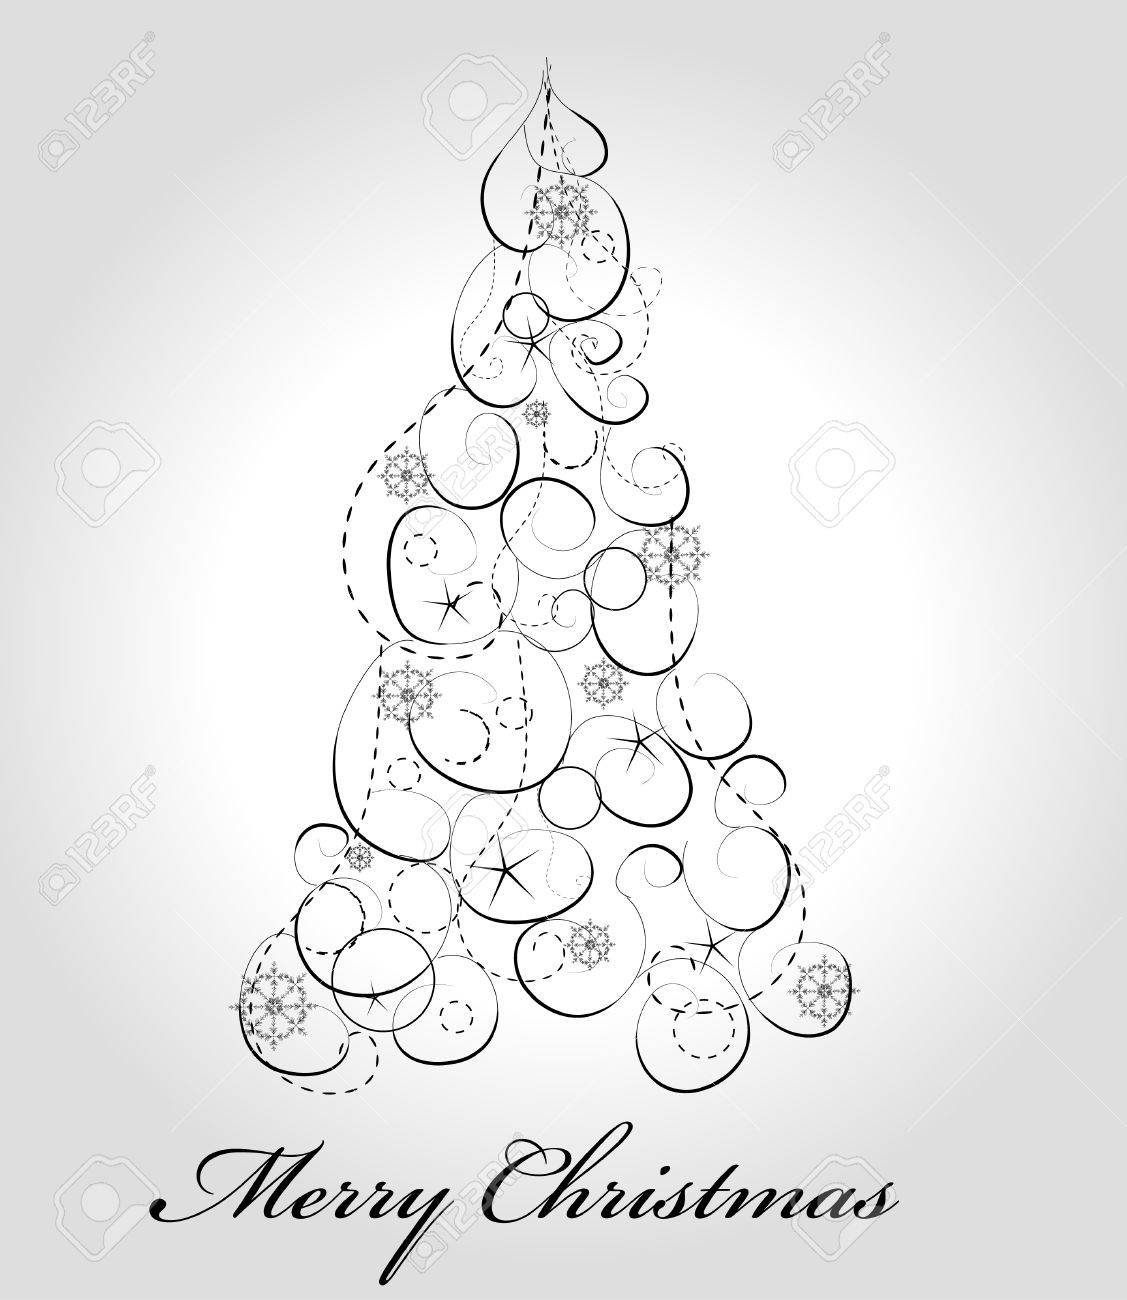 Google Image Result for http://0.tqn.com/d/webclipart/1/0/n/7/5/Pretty- Christmas-Tree.png   Christmas tree clipart, Creative christmas trees,  Christmas tree art